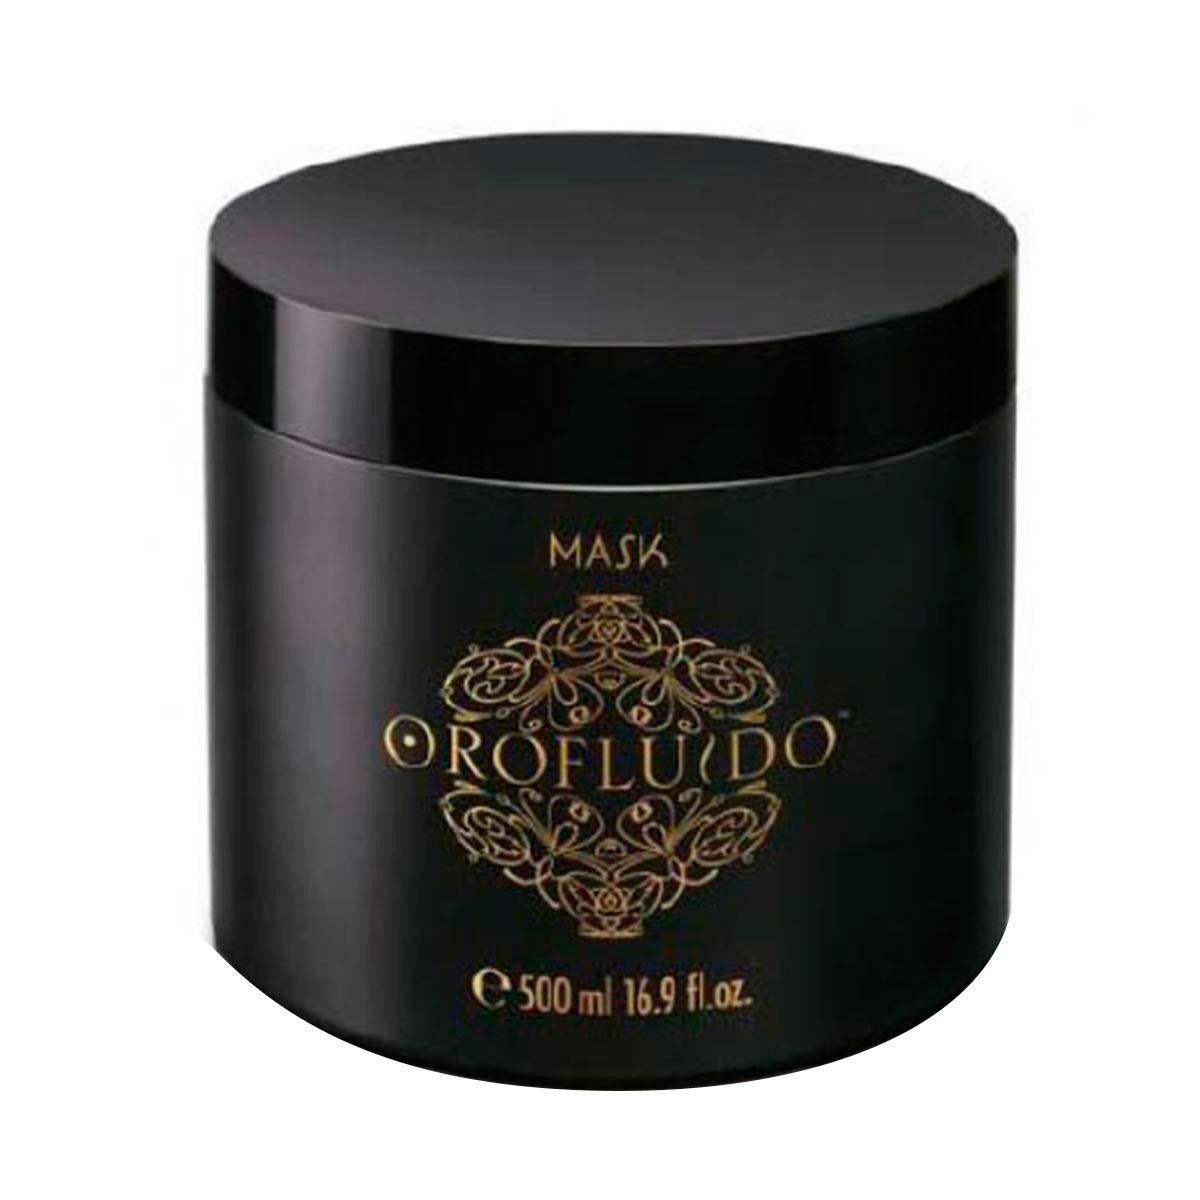 Revlon fragrances Oro Fluido Mask 500ml